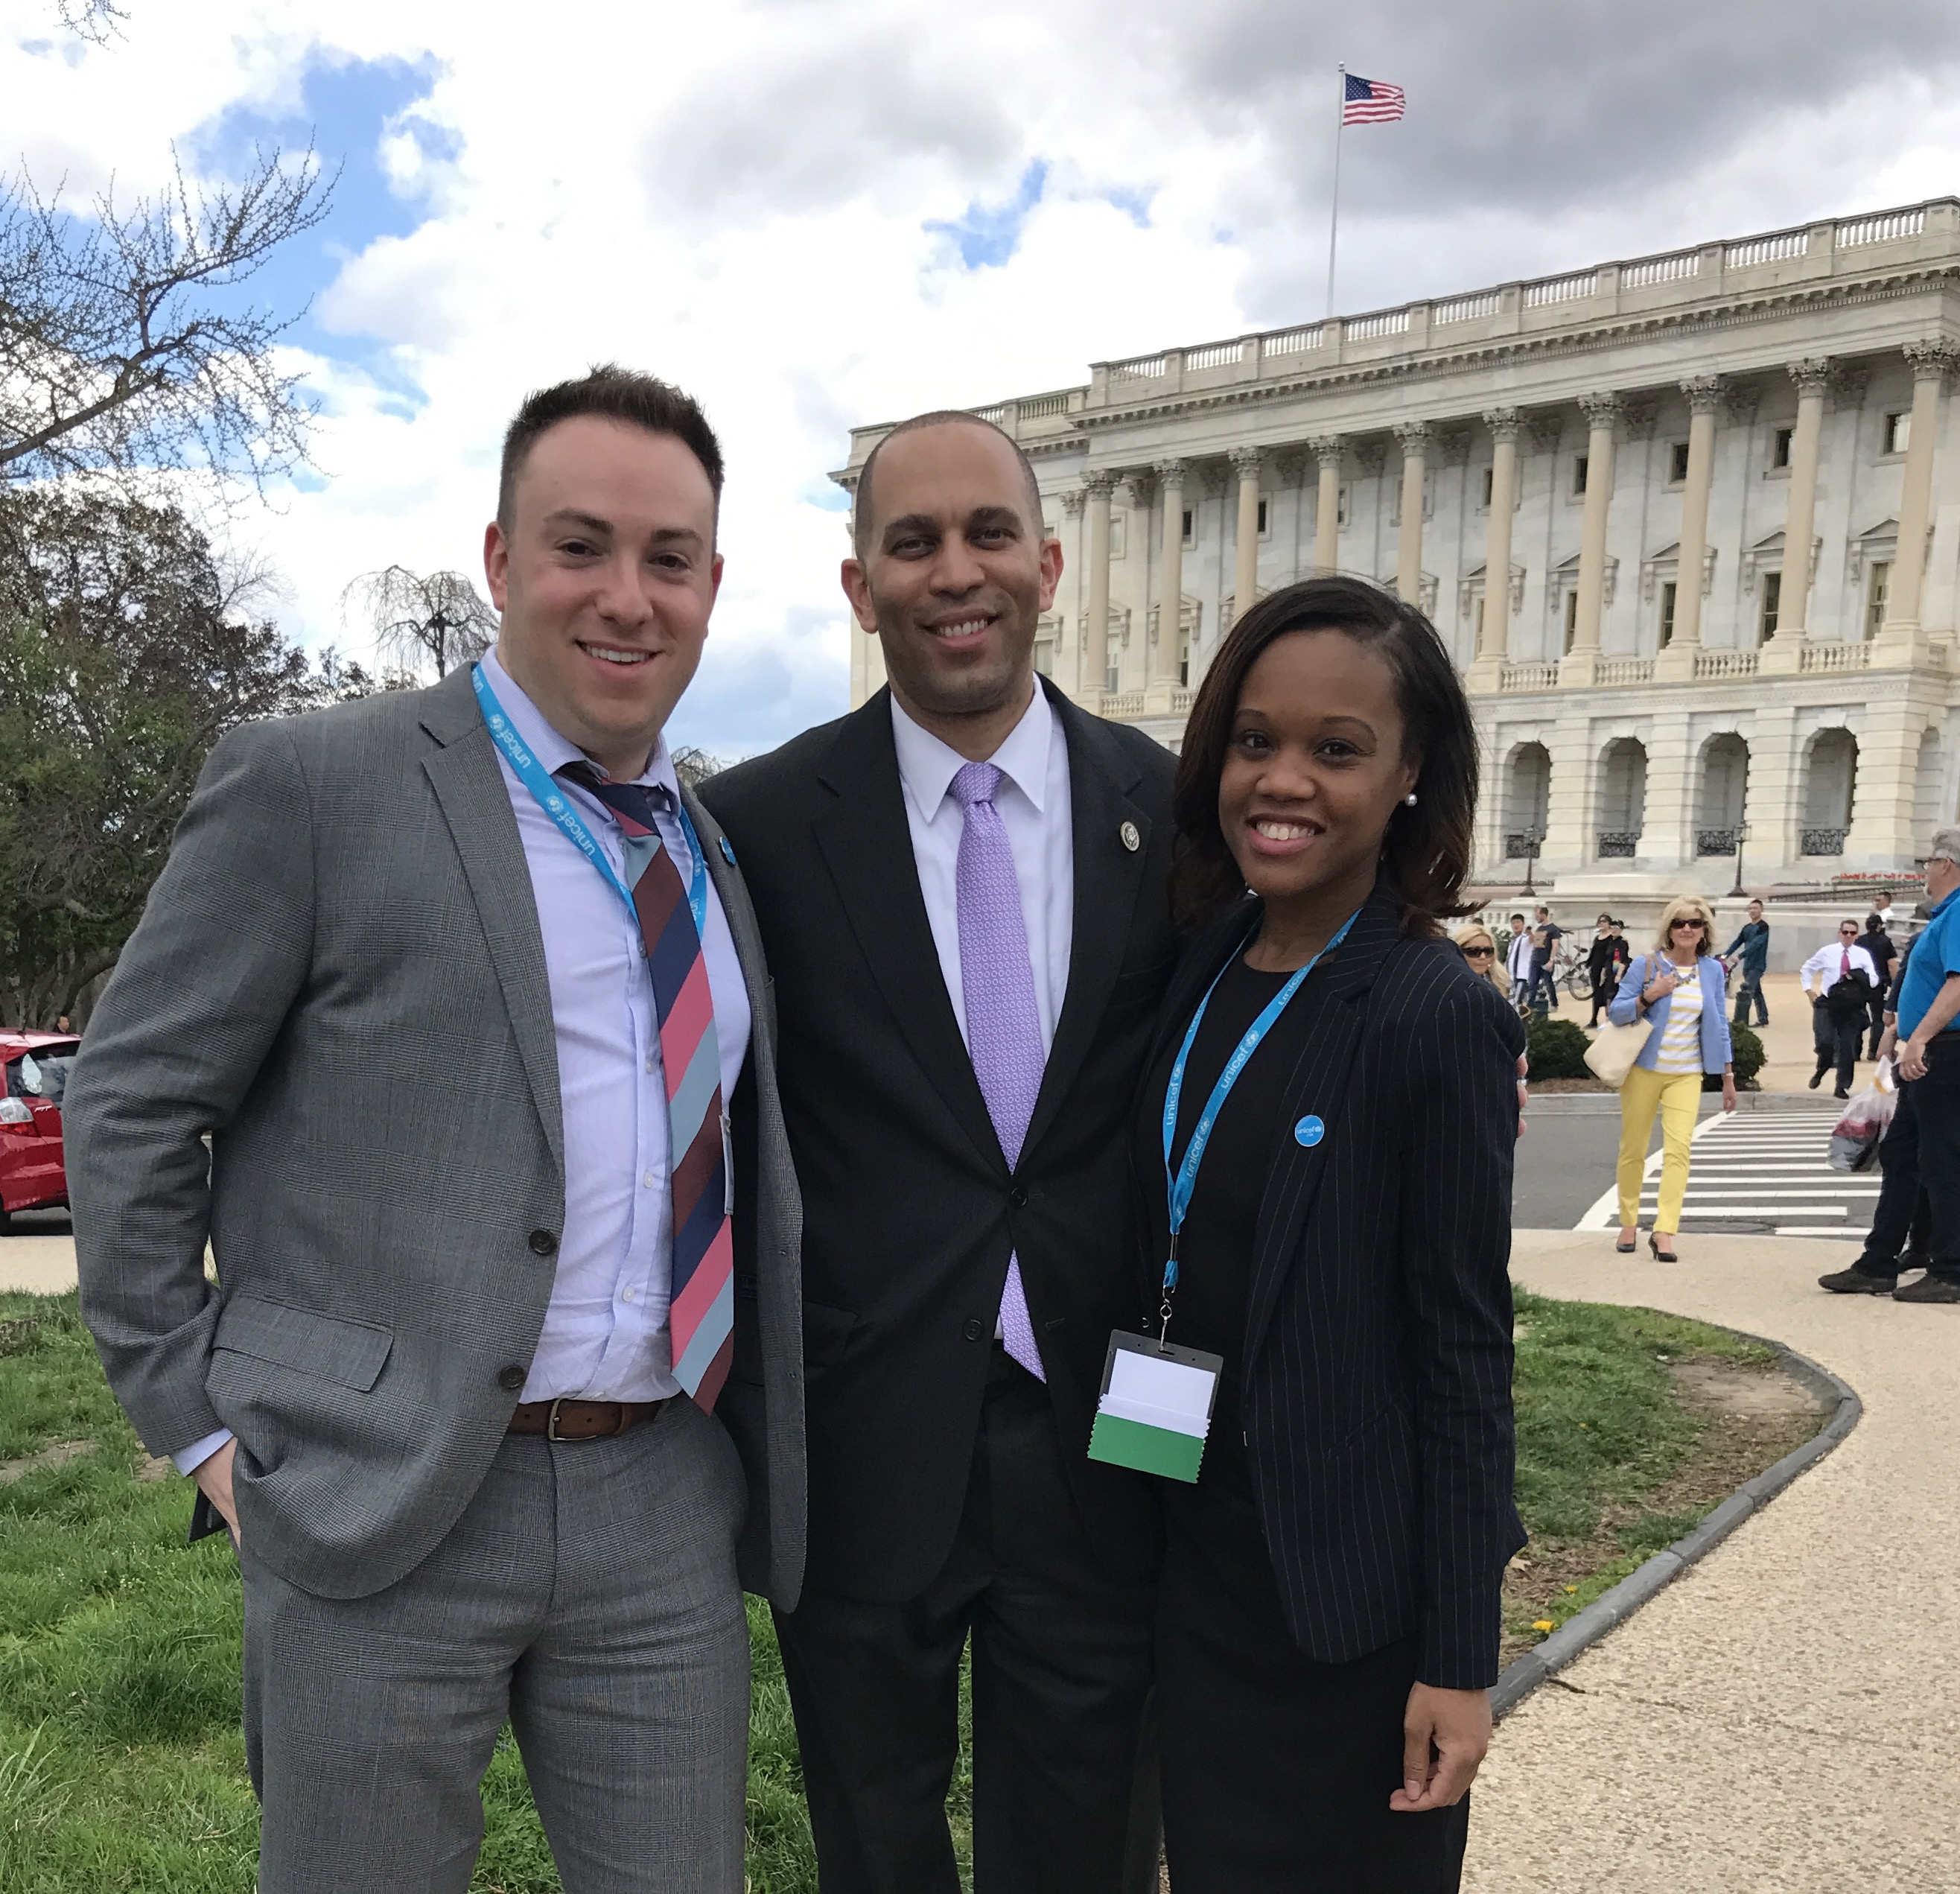 UNICEF USA advocates Michael Braun (left) and Fabienne Pierre (right) meet Rep. Hakeem Jeffries (D-NY).